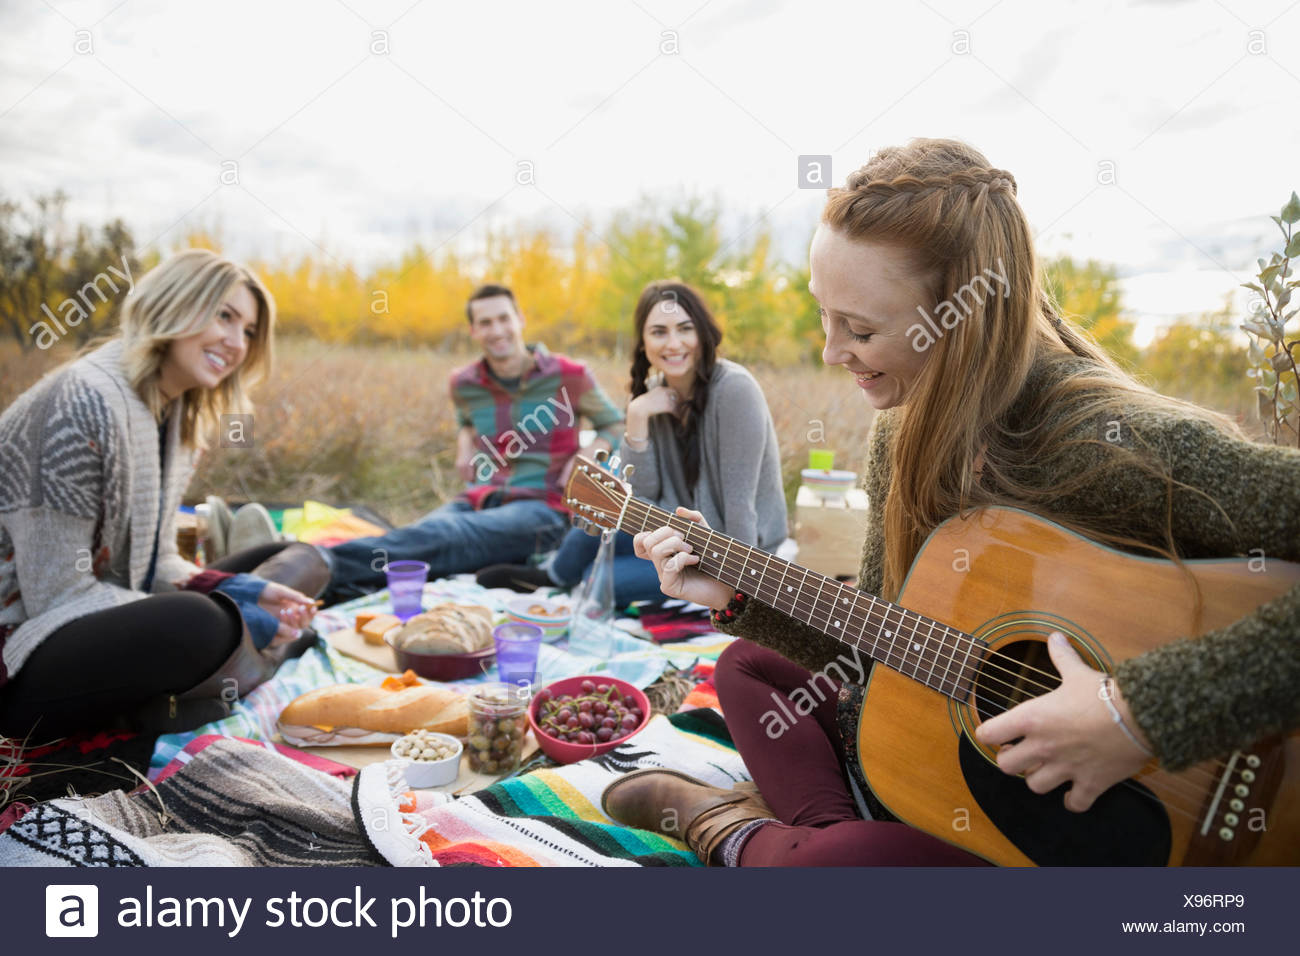 Young woman playing guitar at picnic with friends - Stock Image